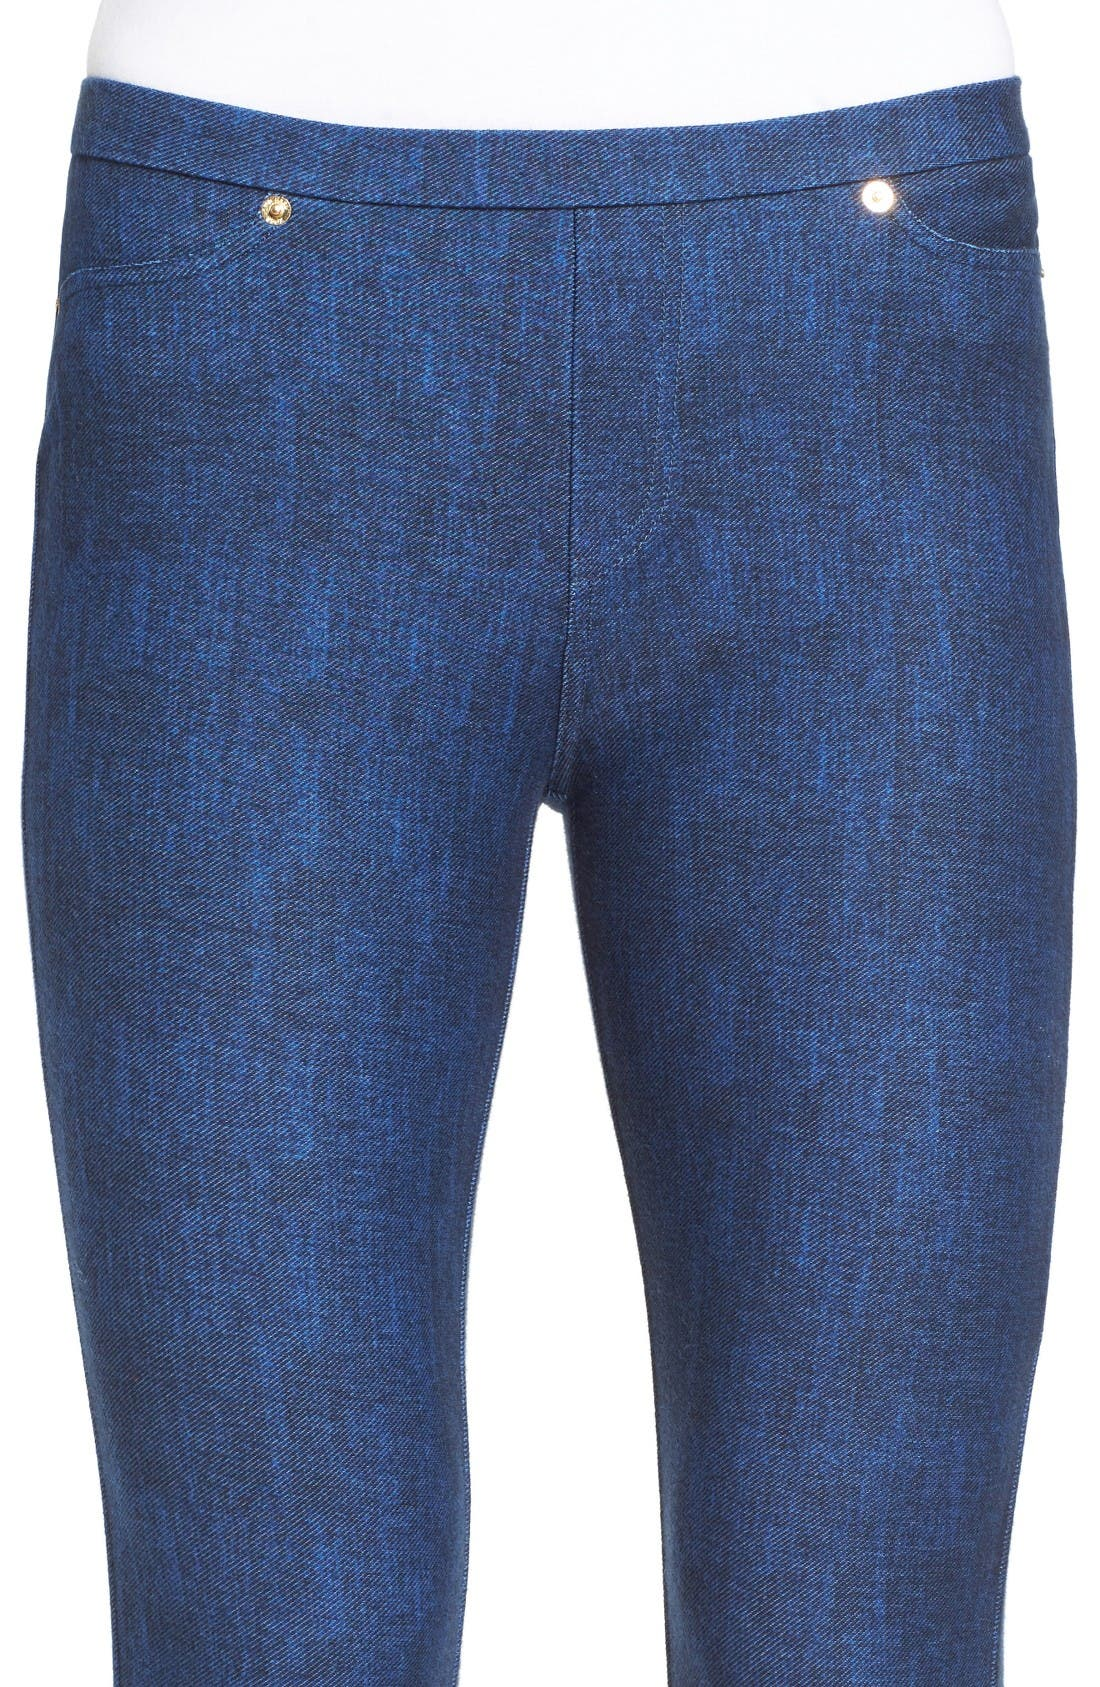 Alternate Image 4  - Michael Kors Denim Leggings